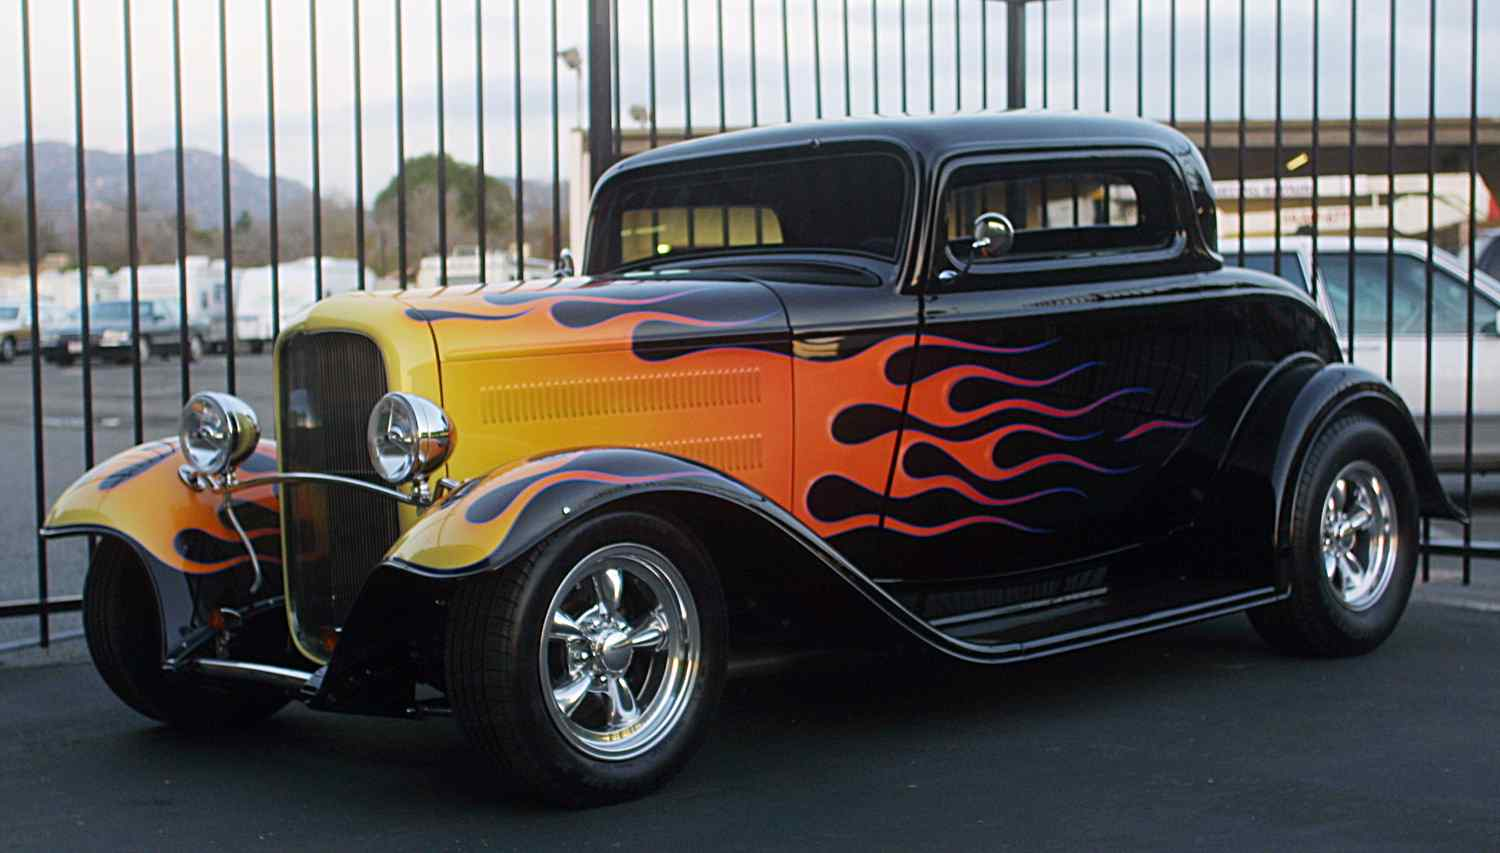 Classic Hot Rod Car Pictures Hot Rod Cars